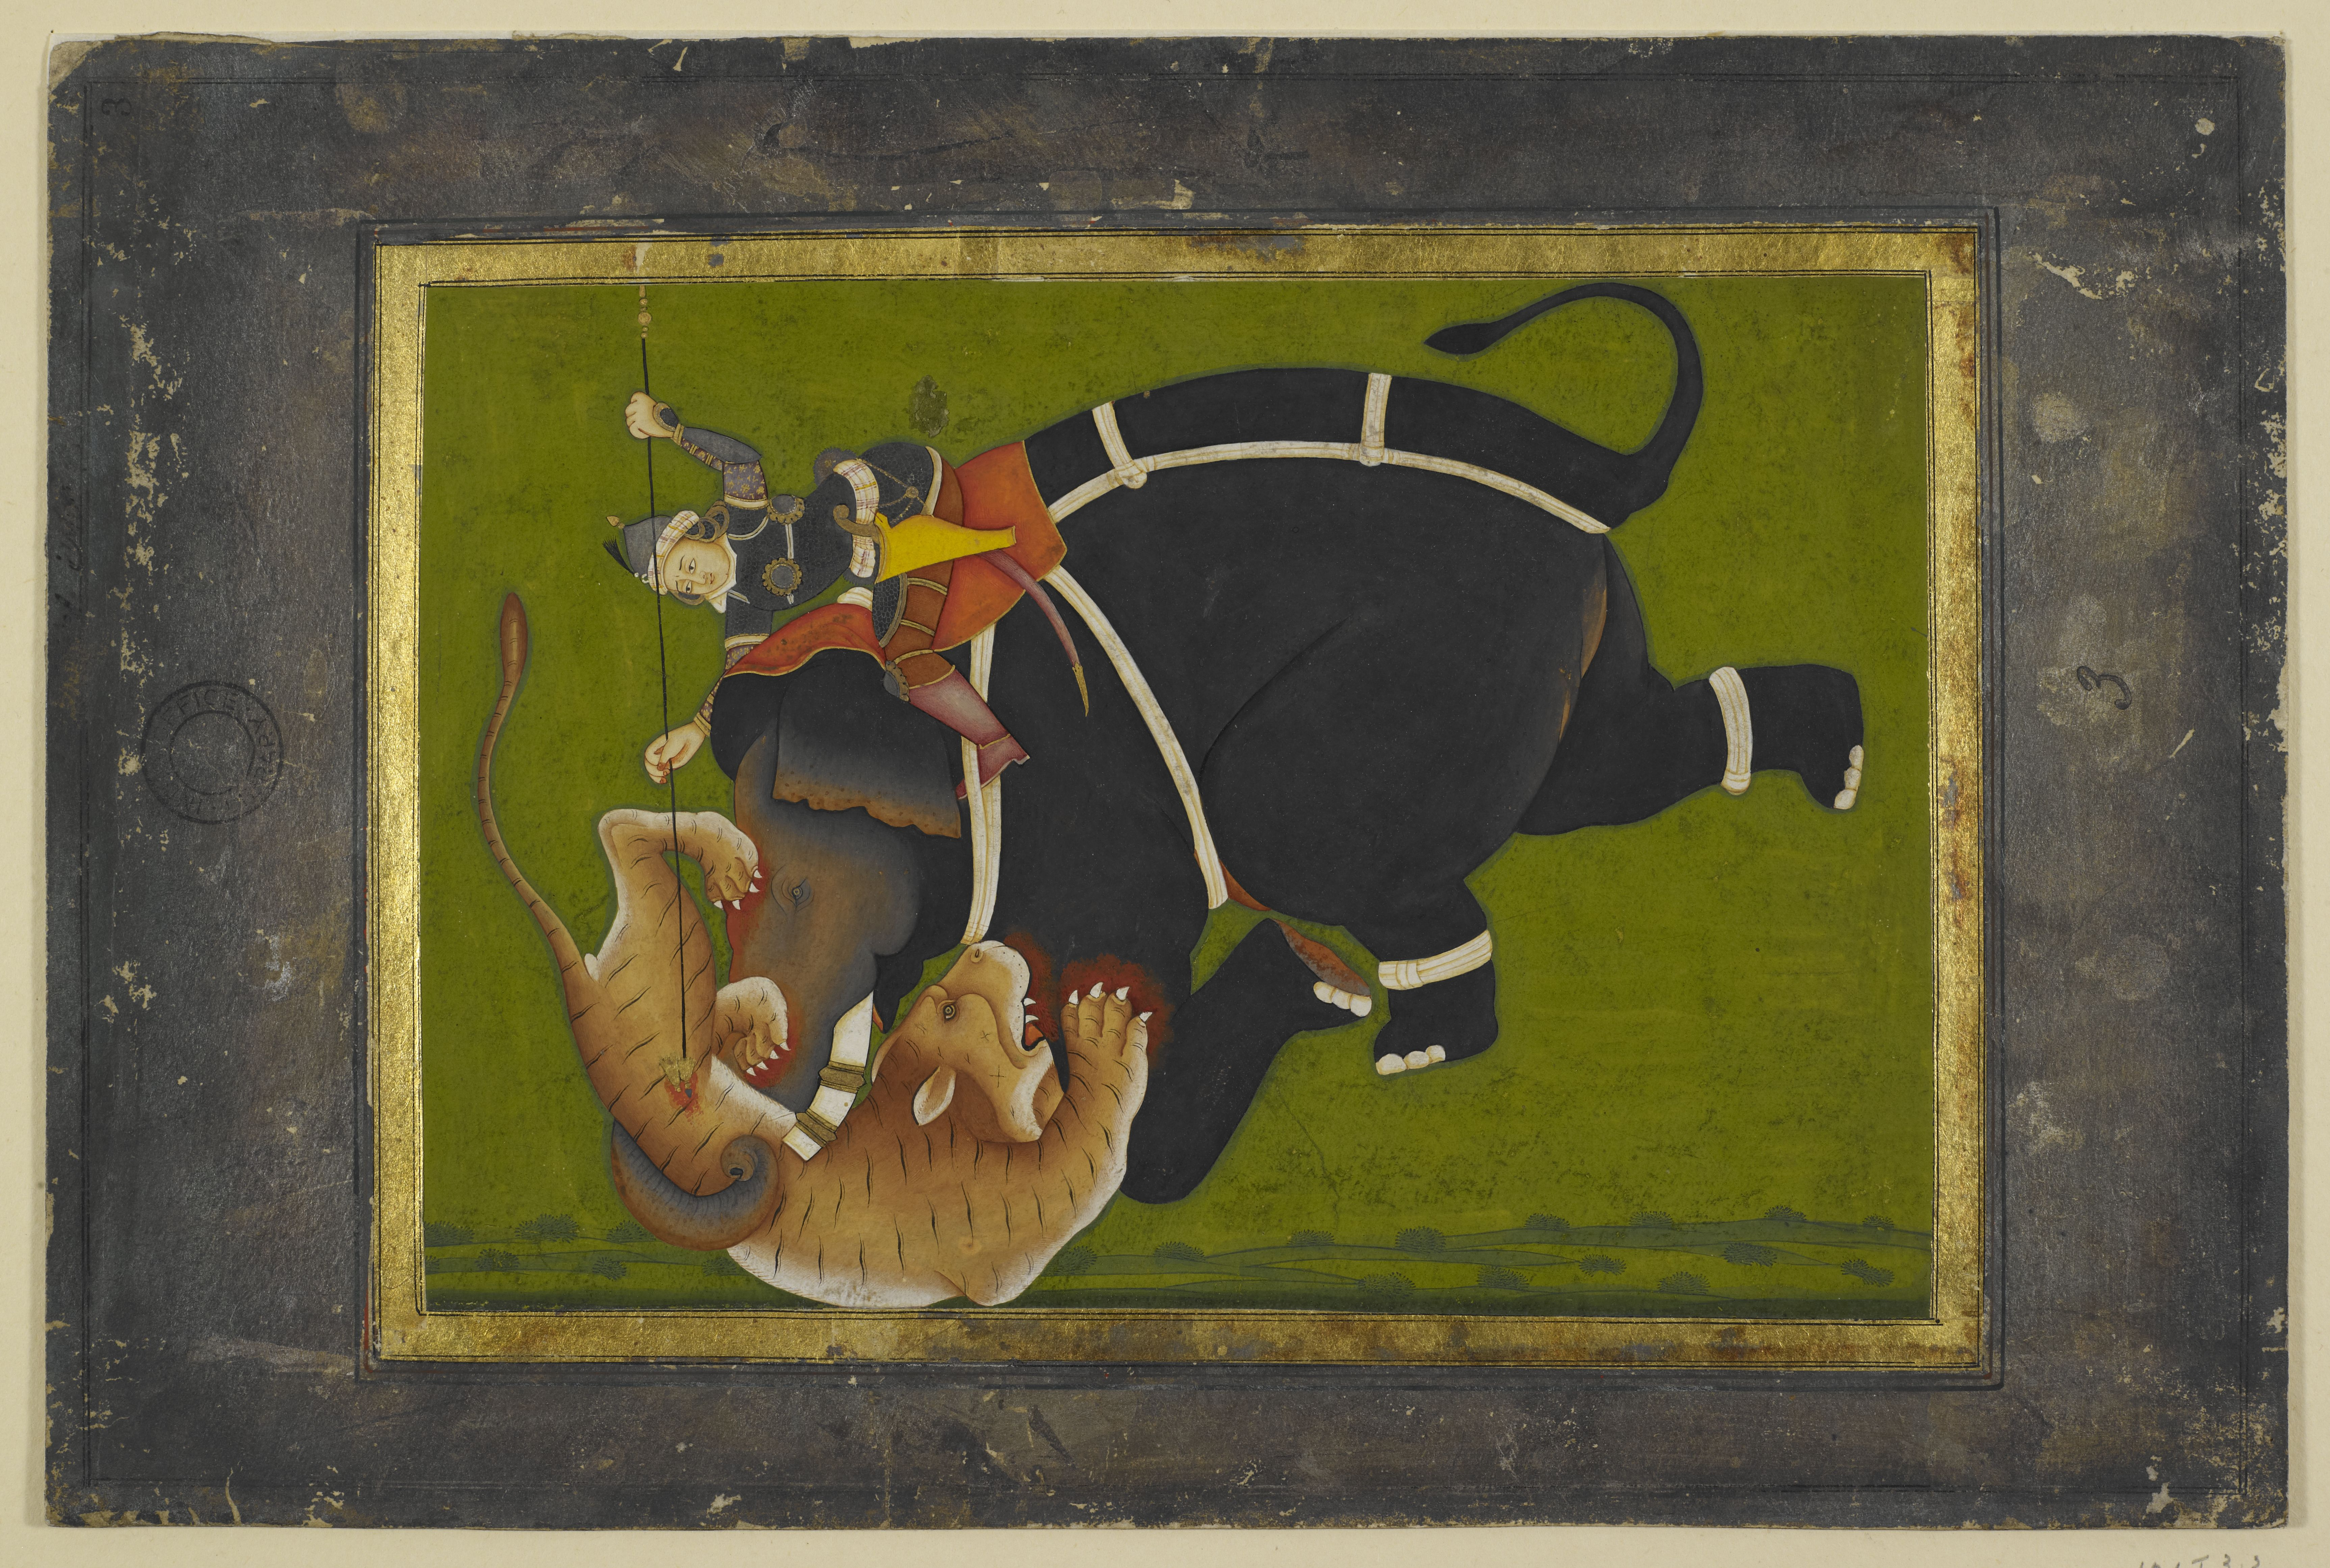 Elephant trampling a tiger on display in Mughal India c British Library Board